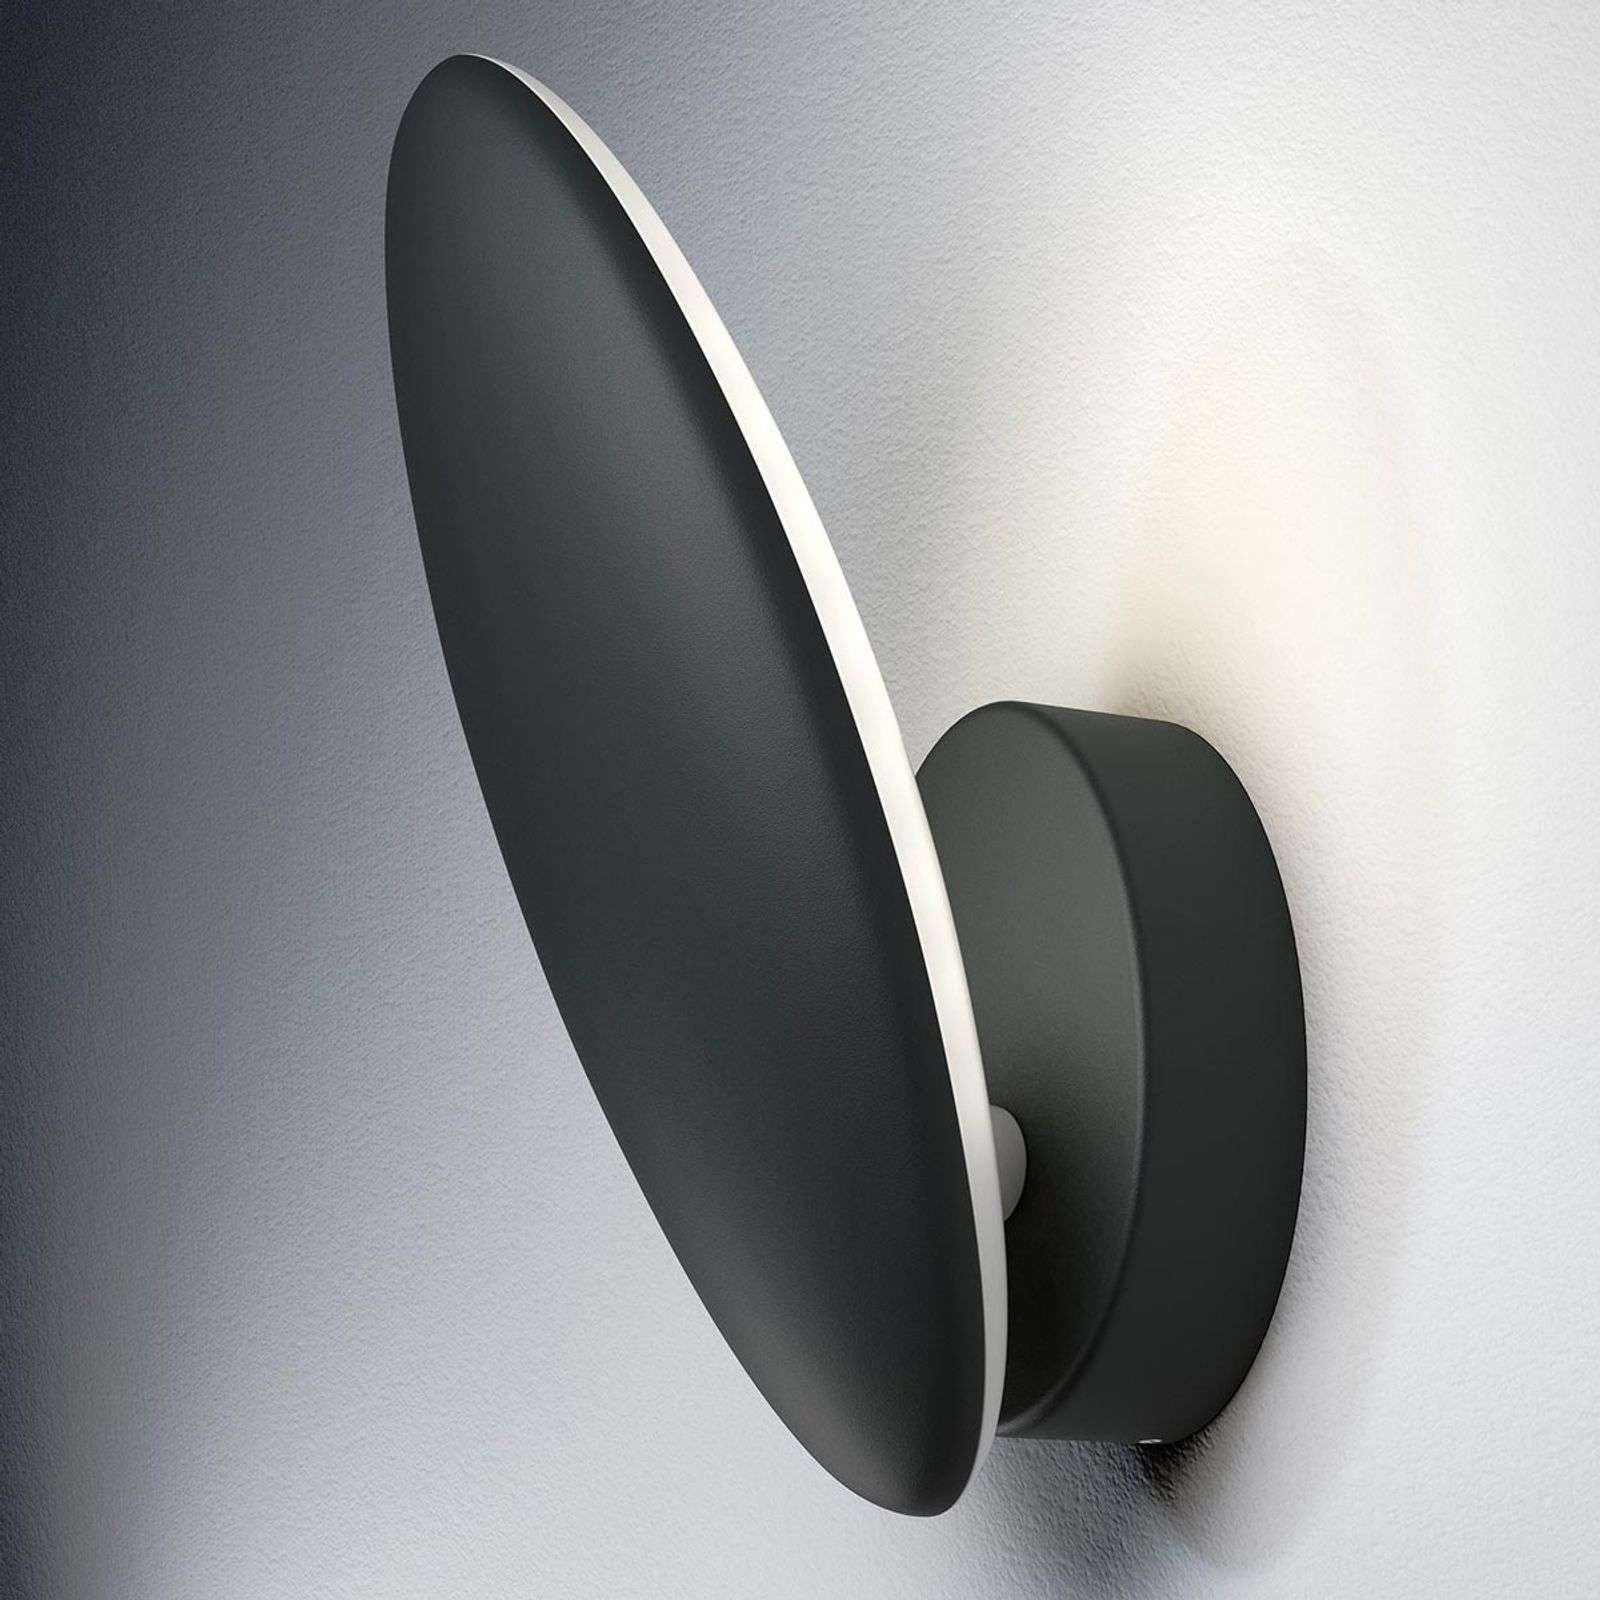 Endura Style Wallwasher - Applique da esterni LED